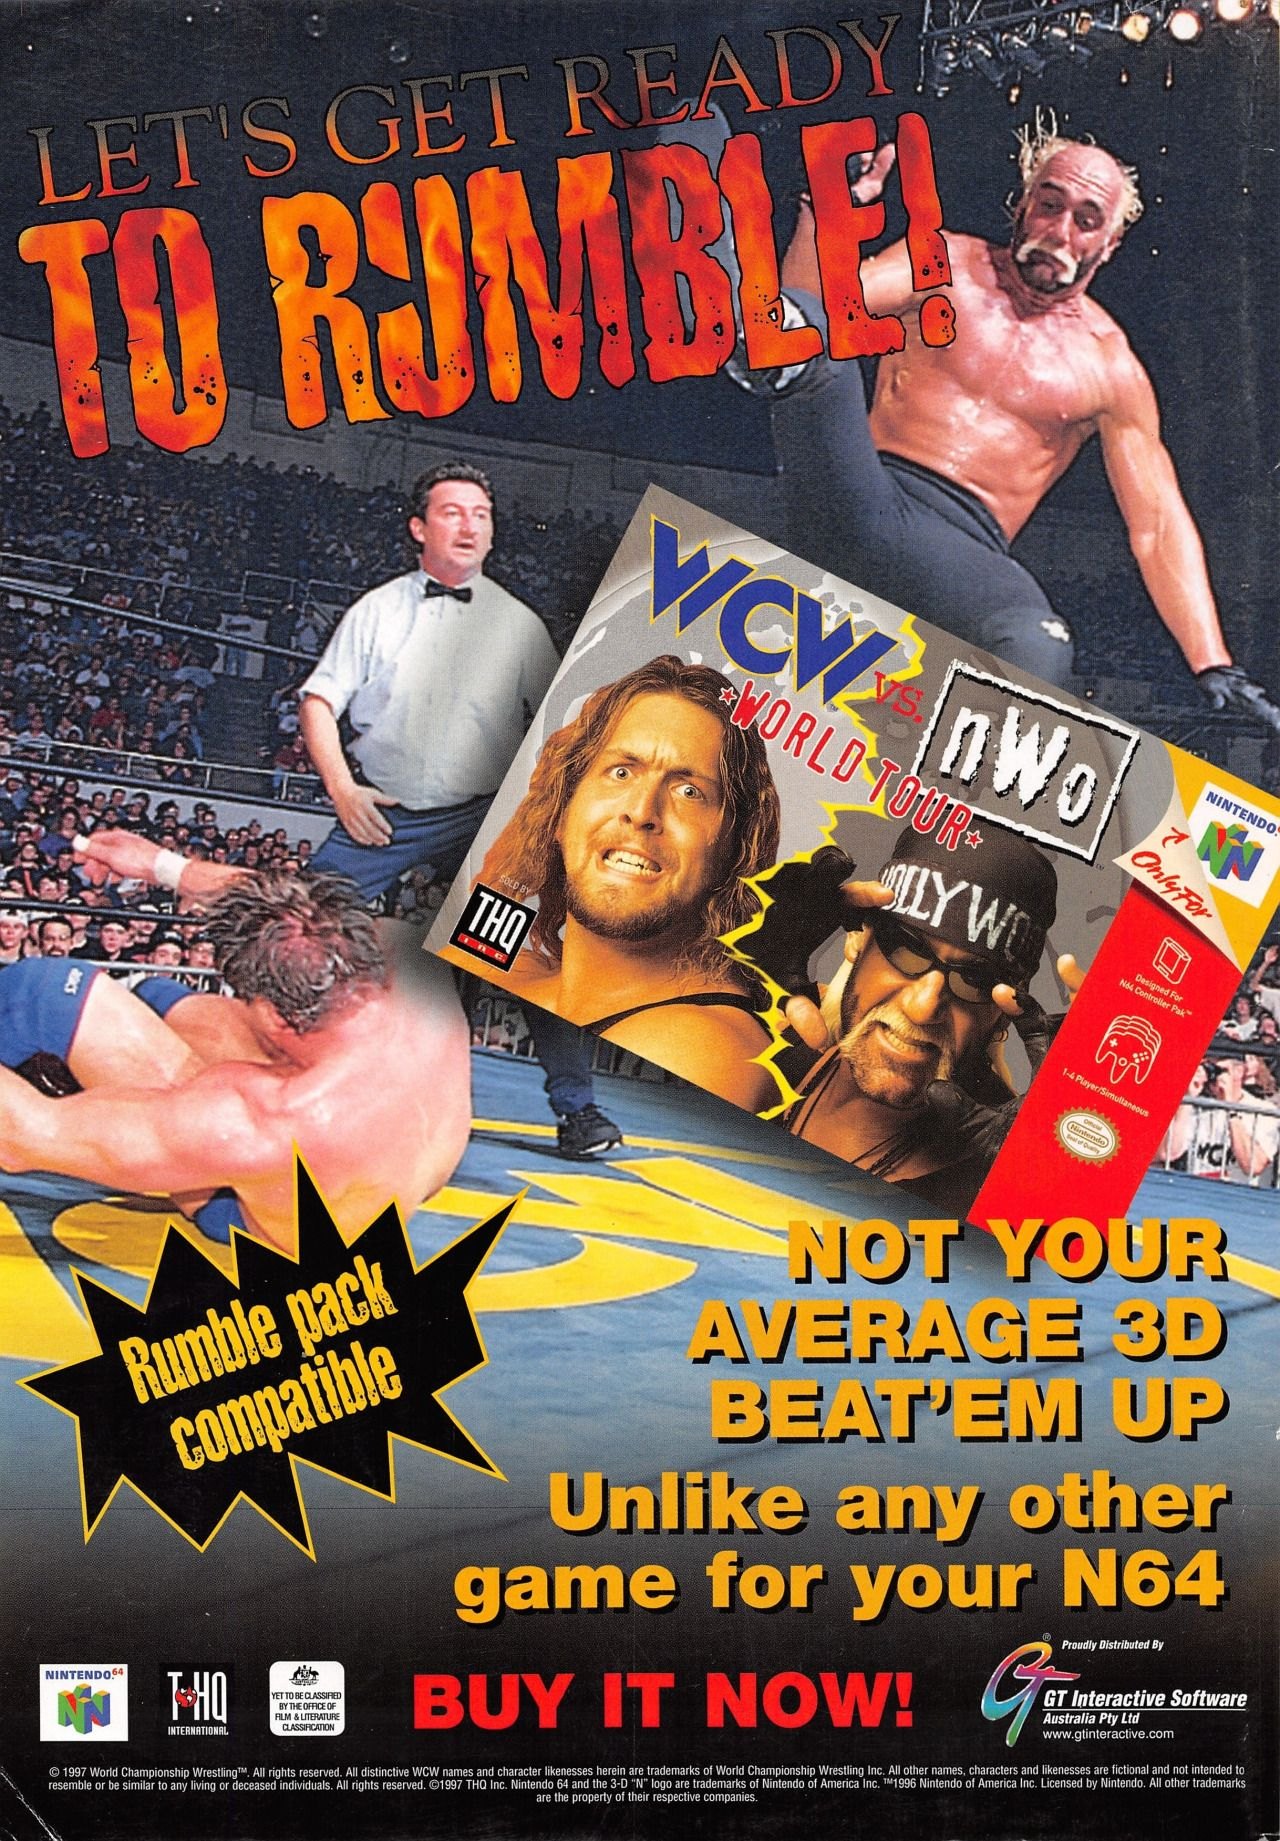 Let's Get Ready To Rumble! Retro video games, Wrestling